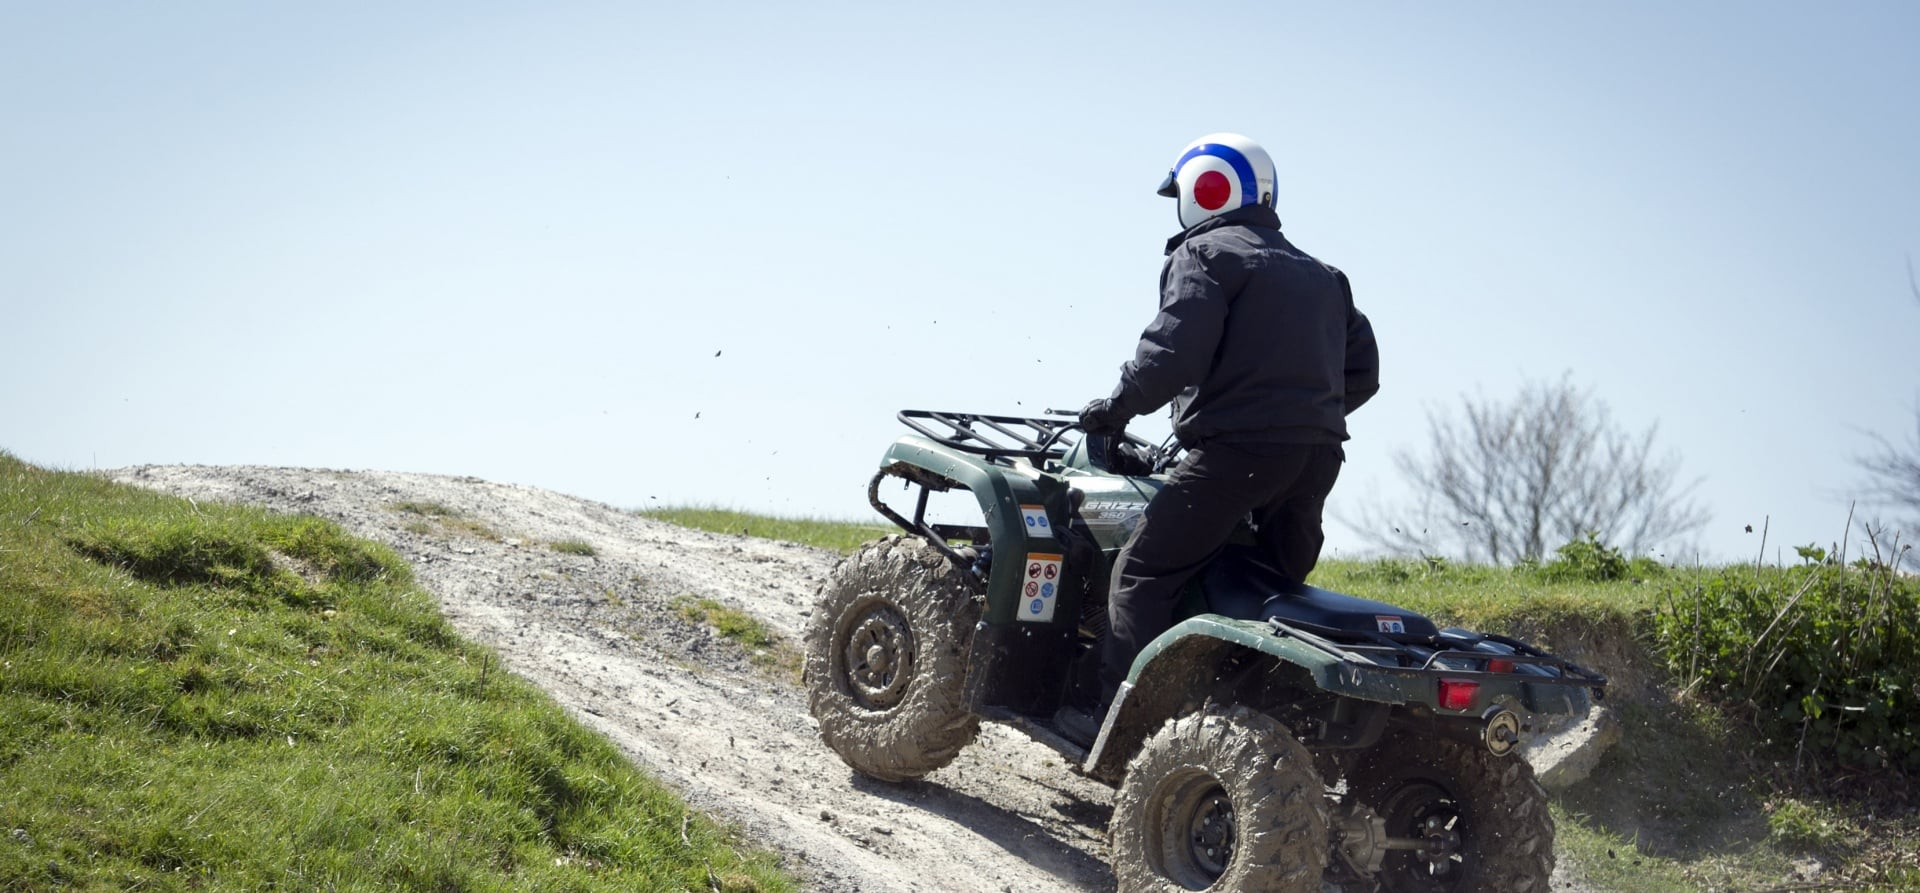 Quad Bike Introduction Thrill - Kent-4